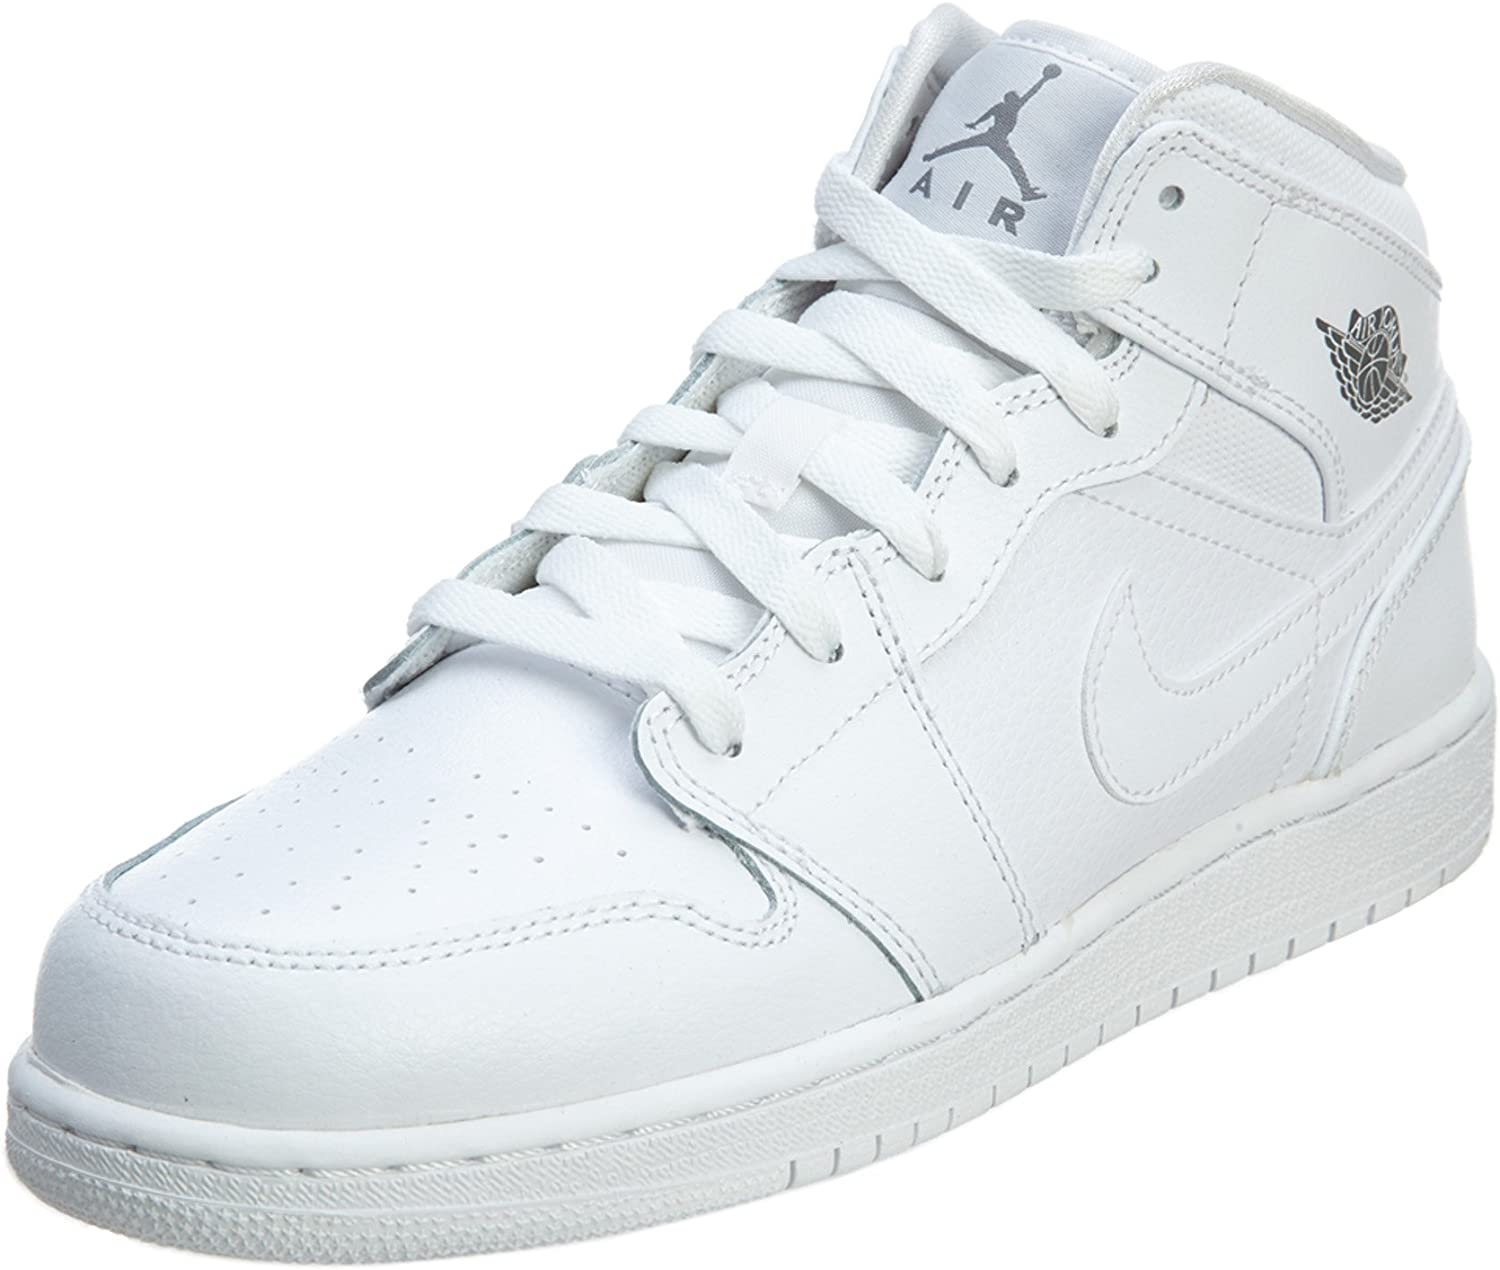 BG 554725 607 Jordan Kids AIR 1 MID